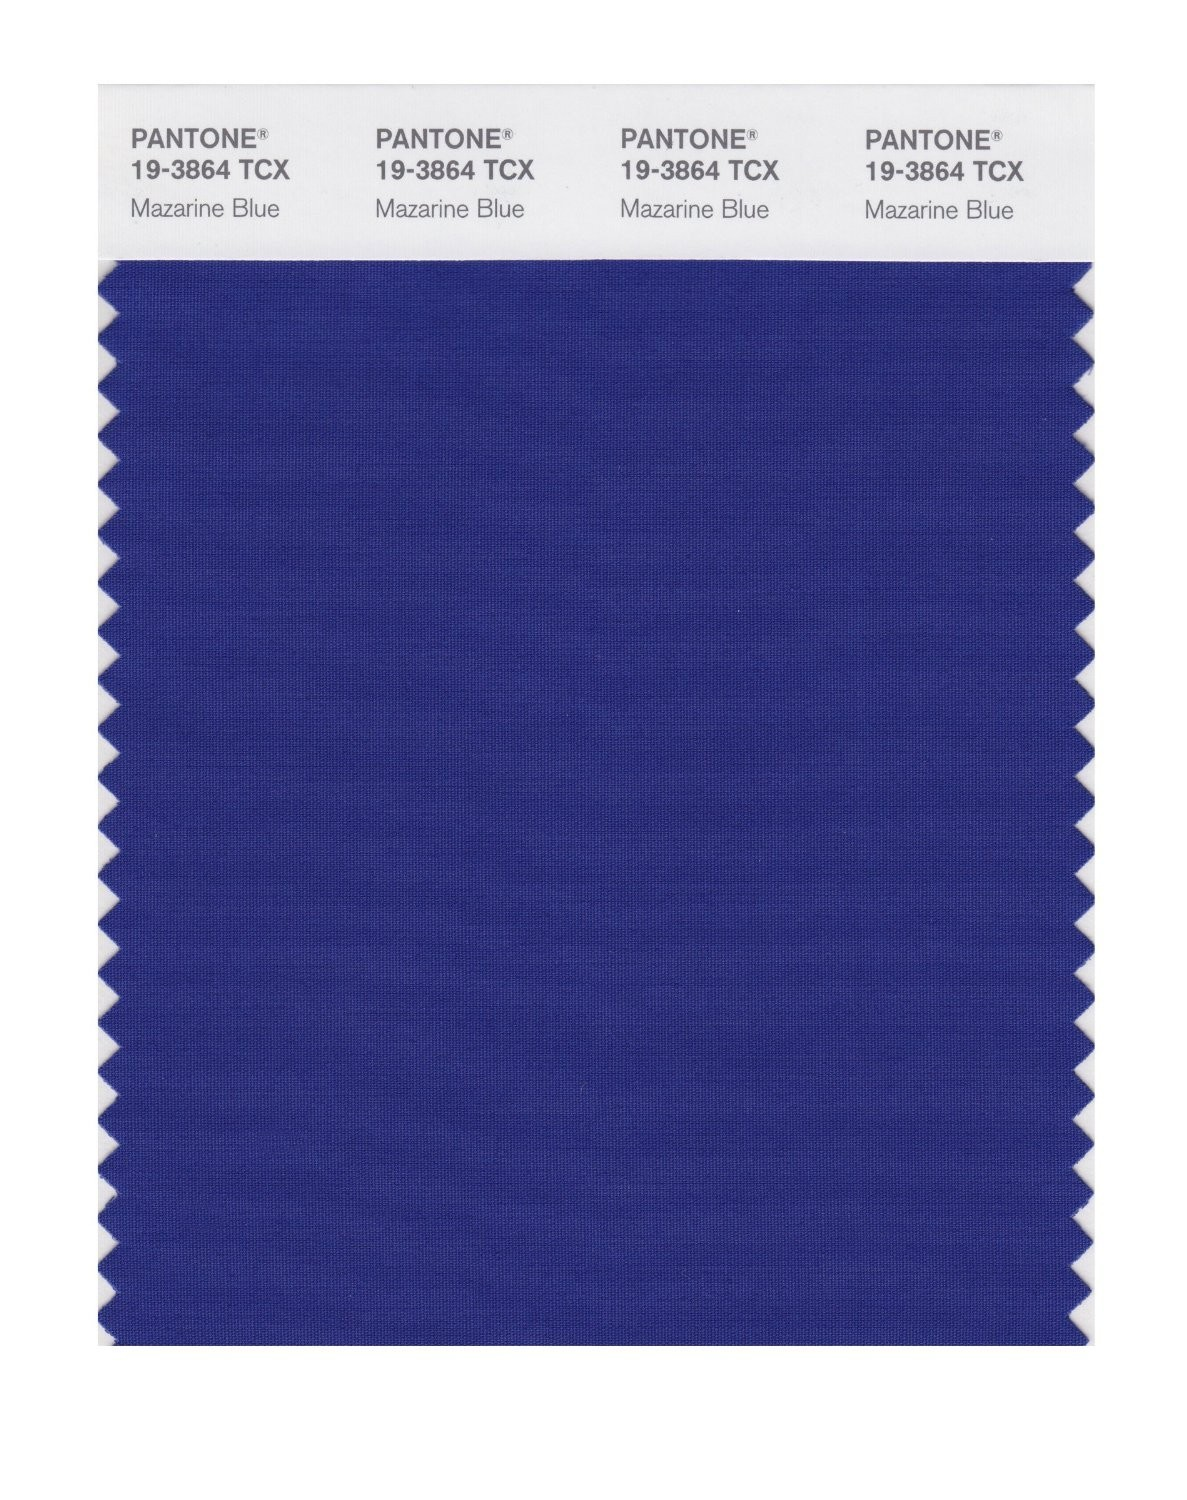 Pantone 19-3864 TCX Swatch Card Mazarine Blue